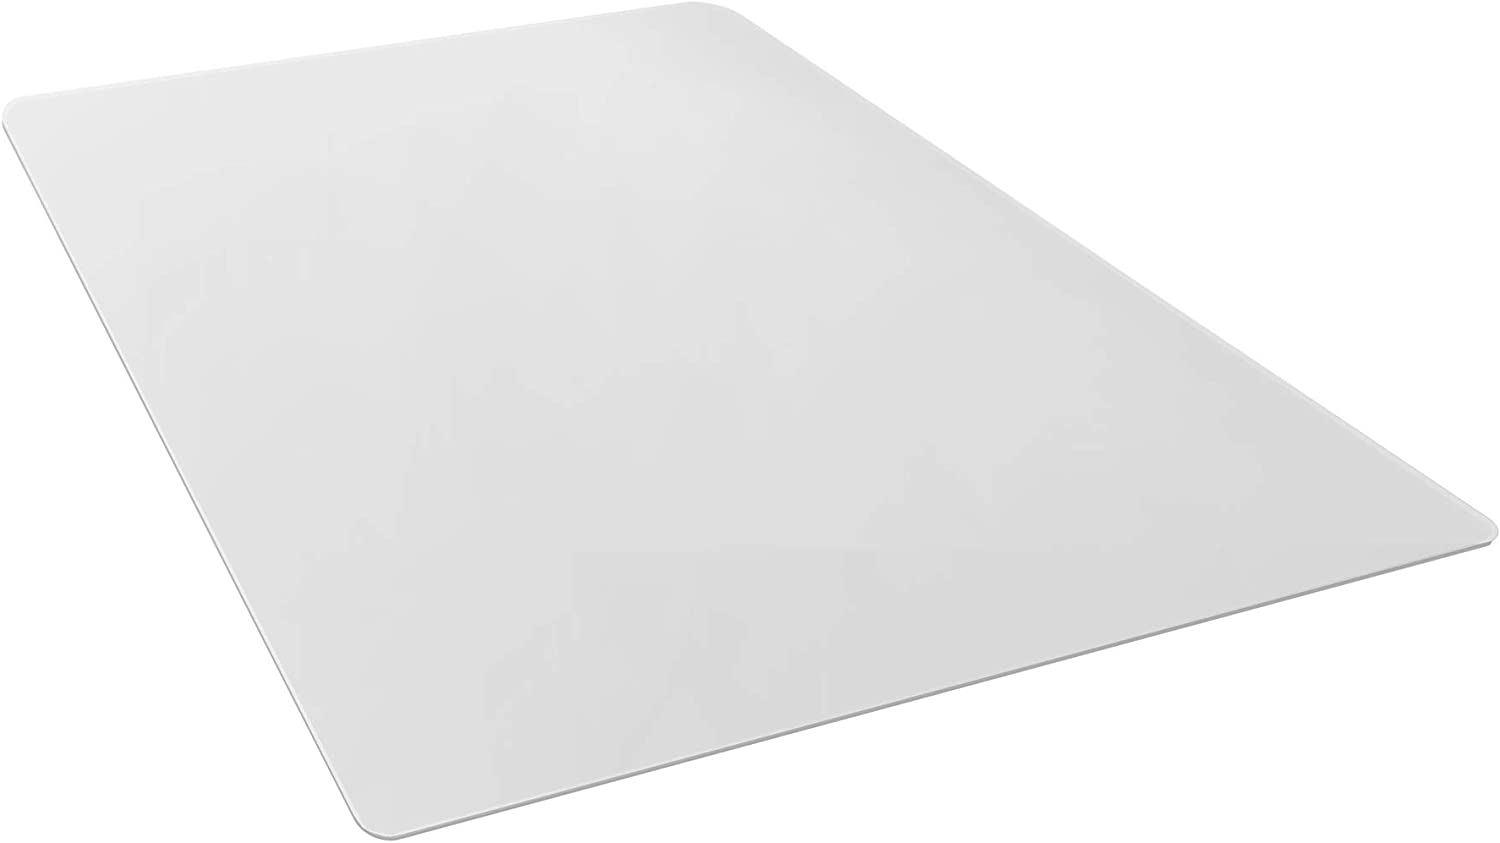 "AmazonBasics Polycarbonate Anti-Slip Chair Mat for Hard Floors - 47"" x 59"""